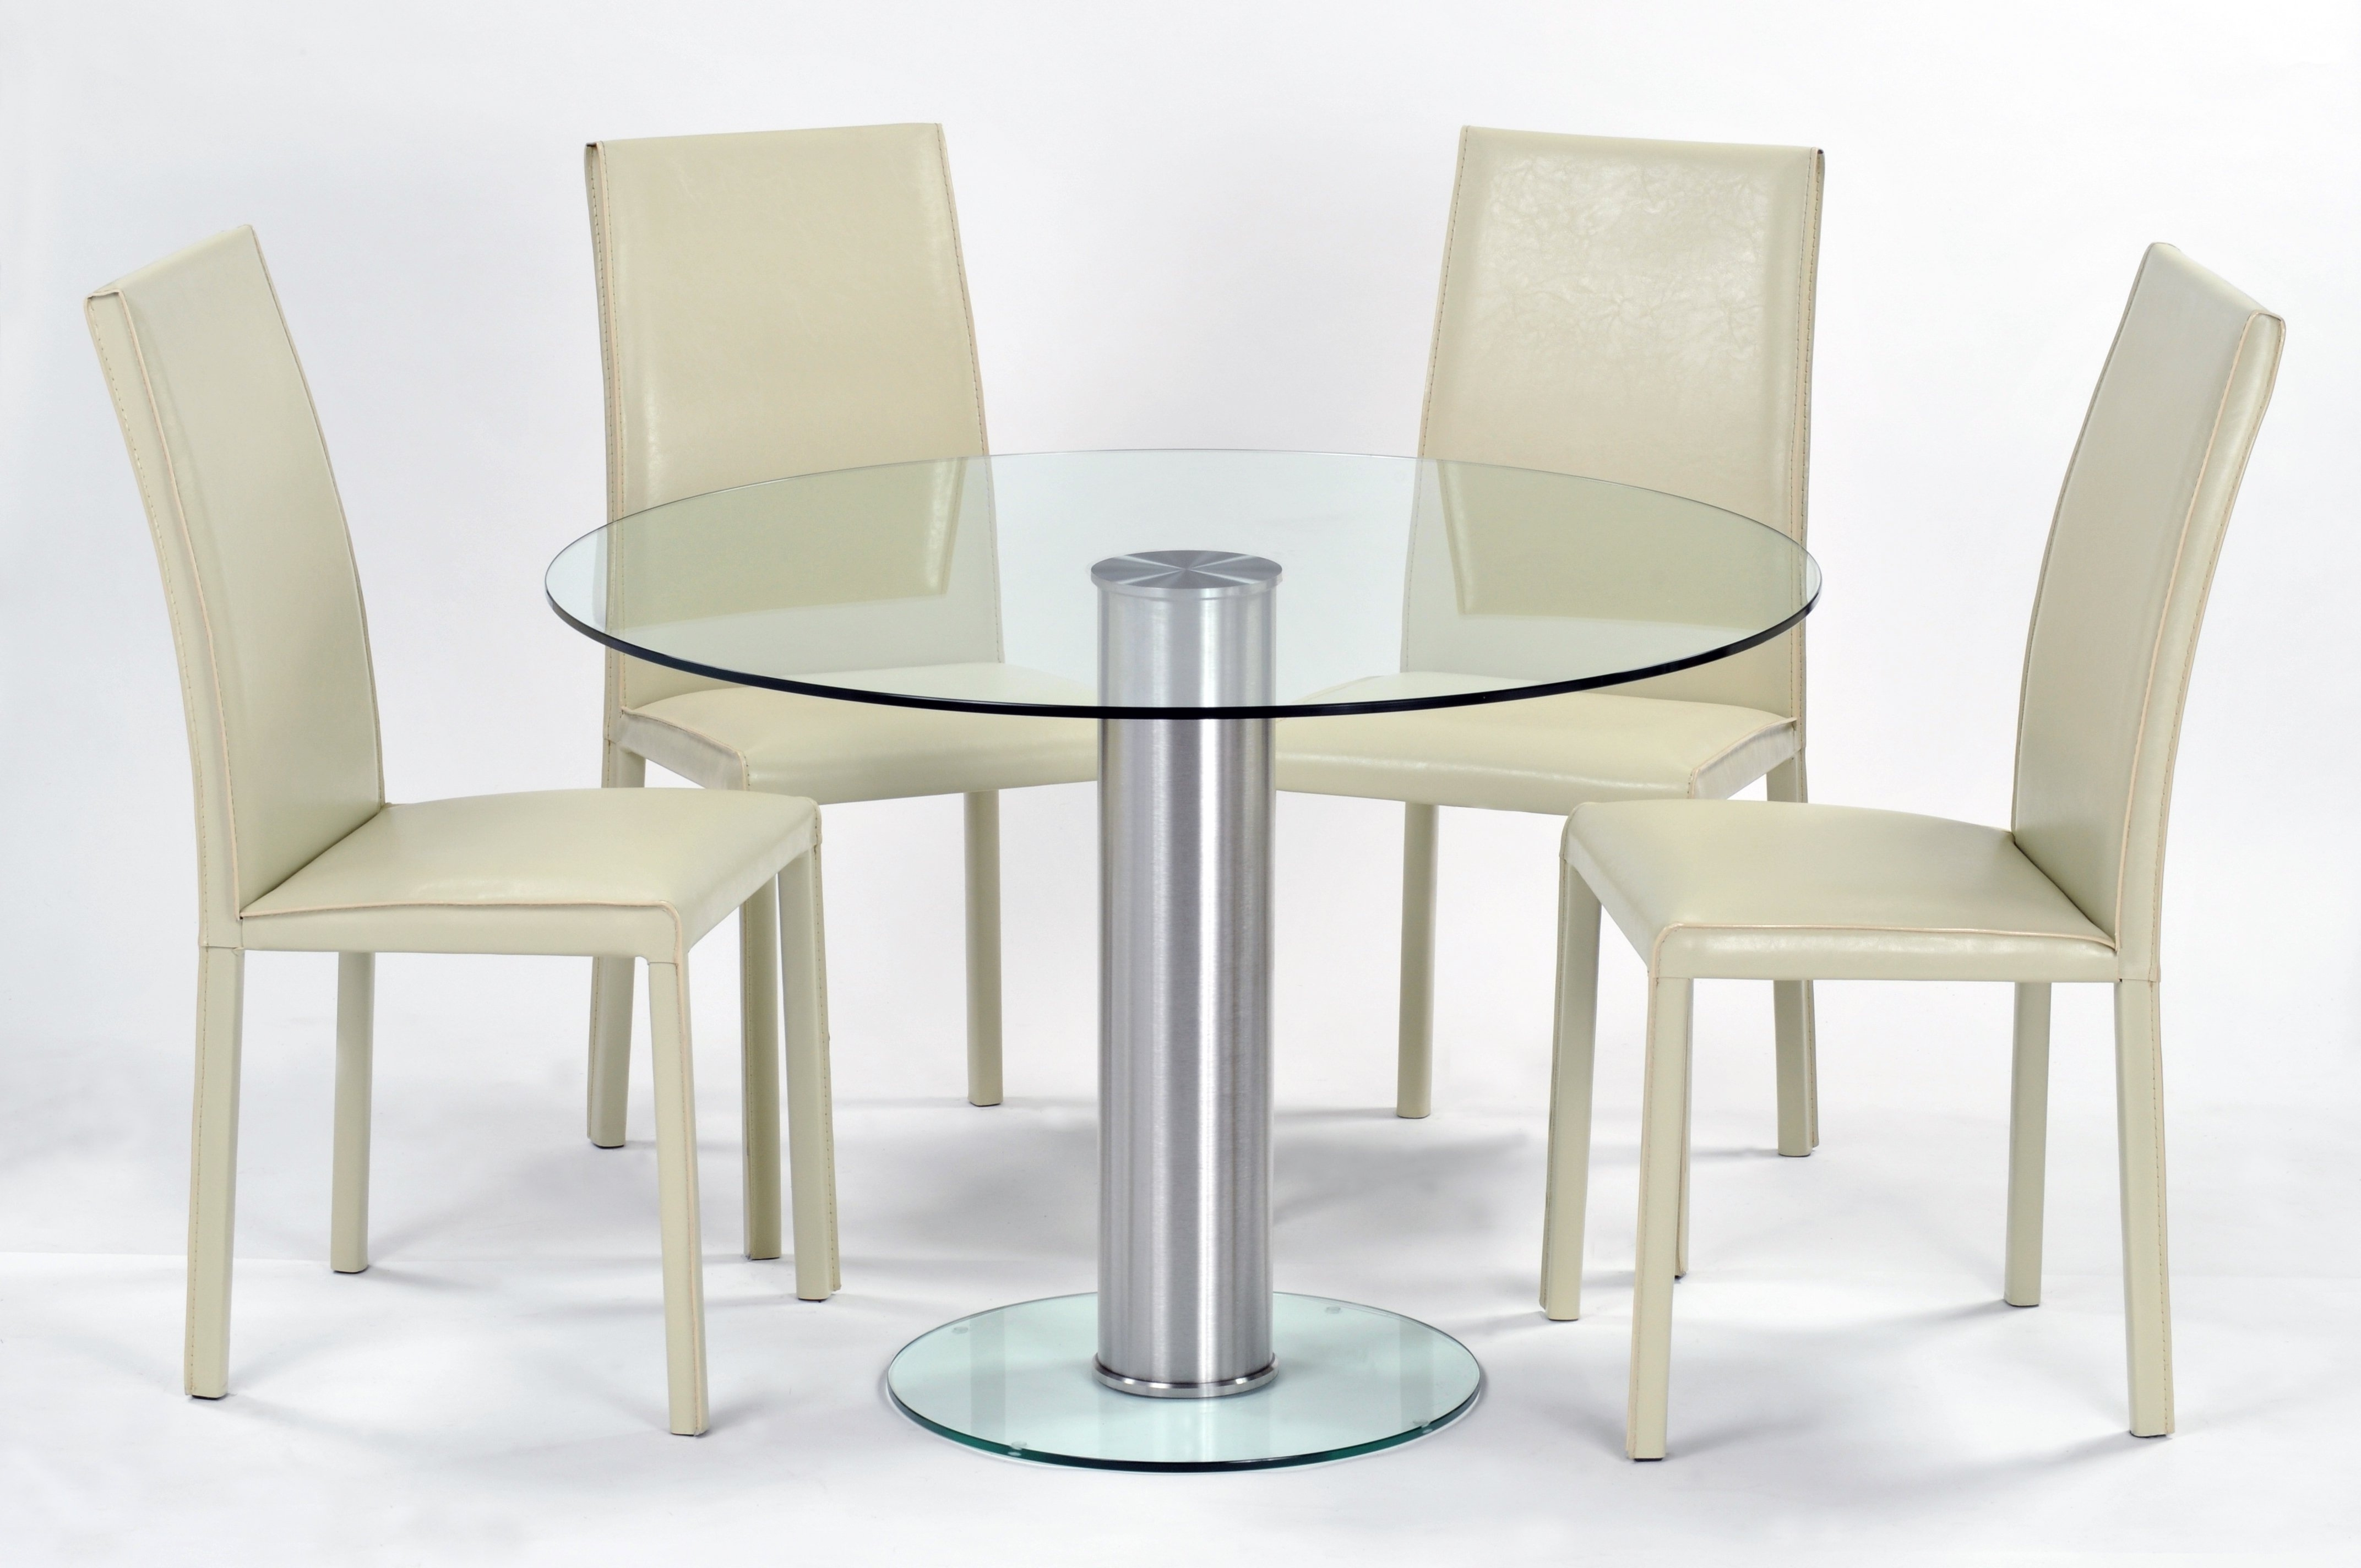 Trendy Compact Dining Tables Pertaining To Compact Dining Table And Chair Sets – Castrophotos (View 24 of 25)